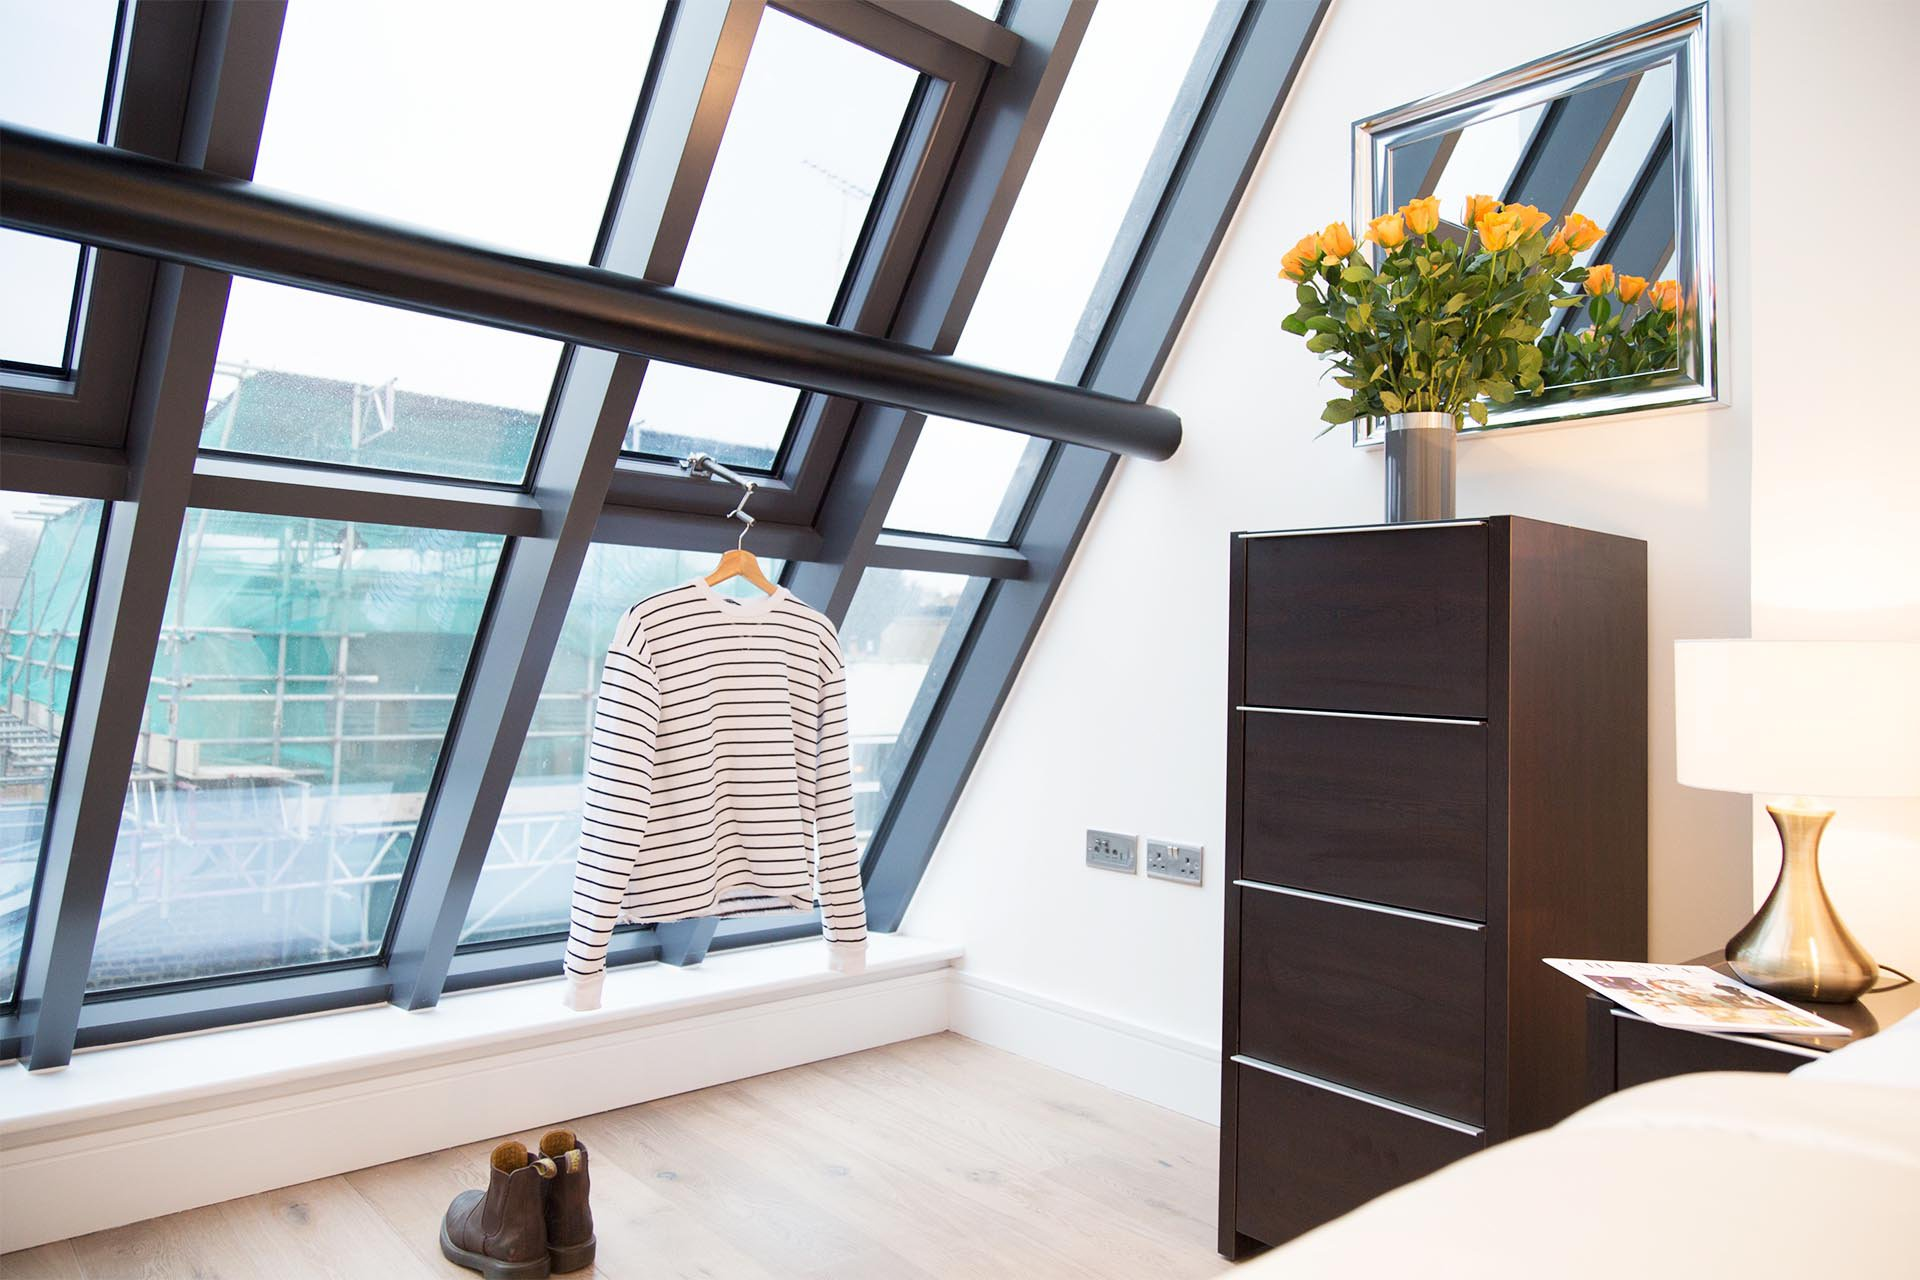 Bedroom interiors image with natural lighting from large window